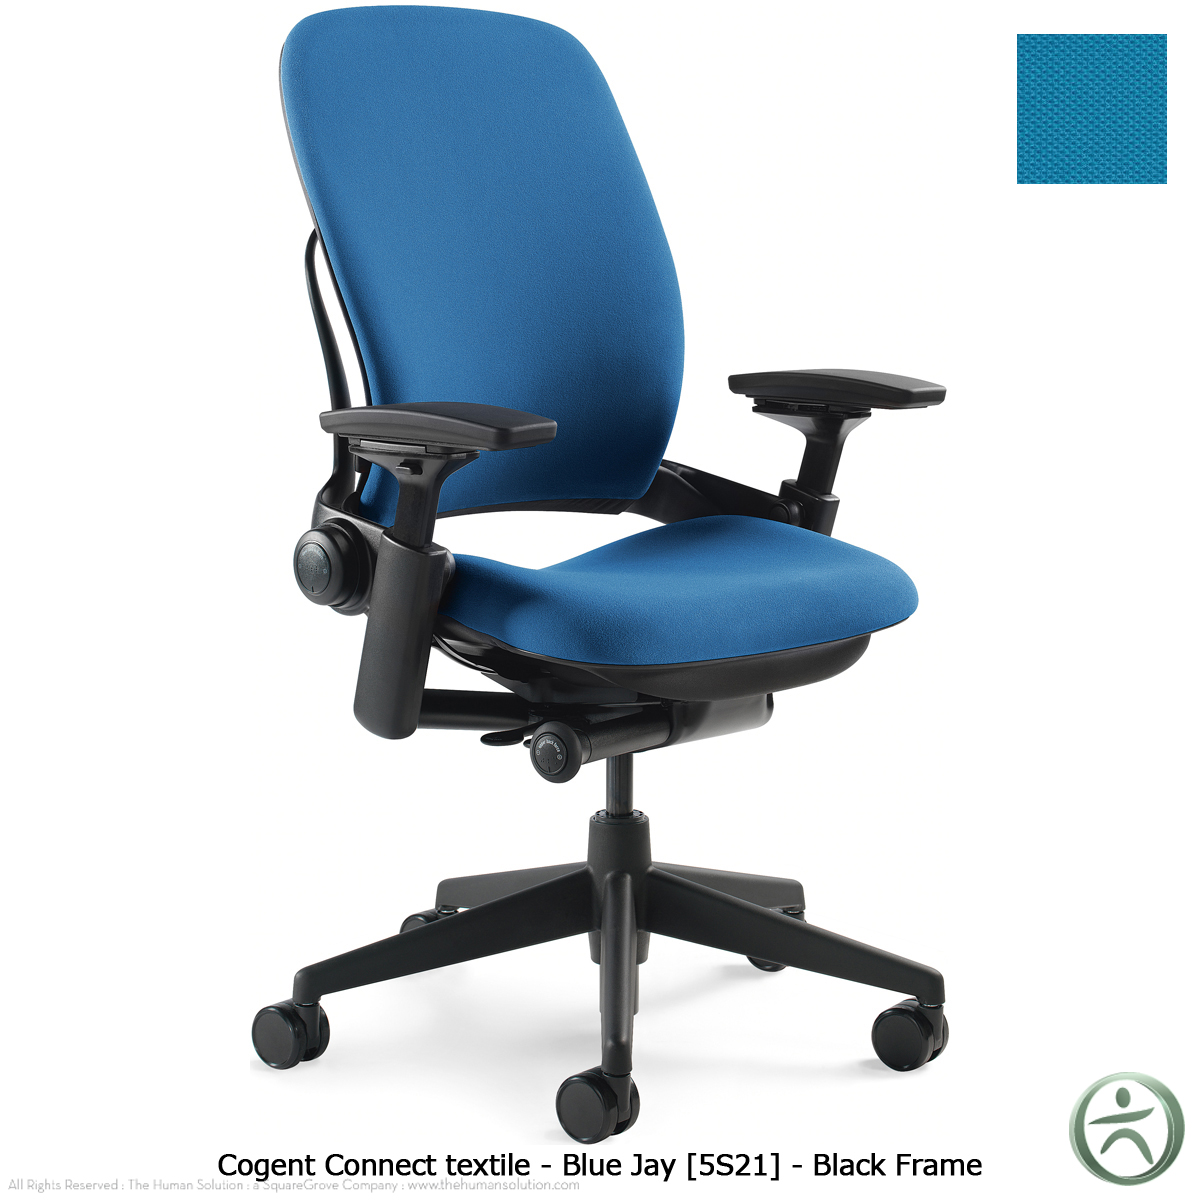 Steelcase Chairs Steelcase Leap Chair Steelcase Leap Ergonomic Office Chair